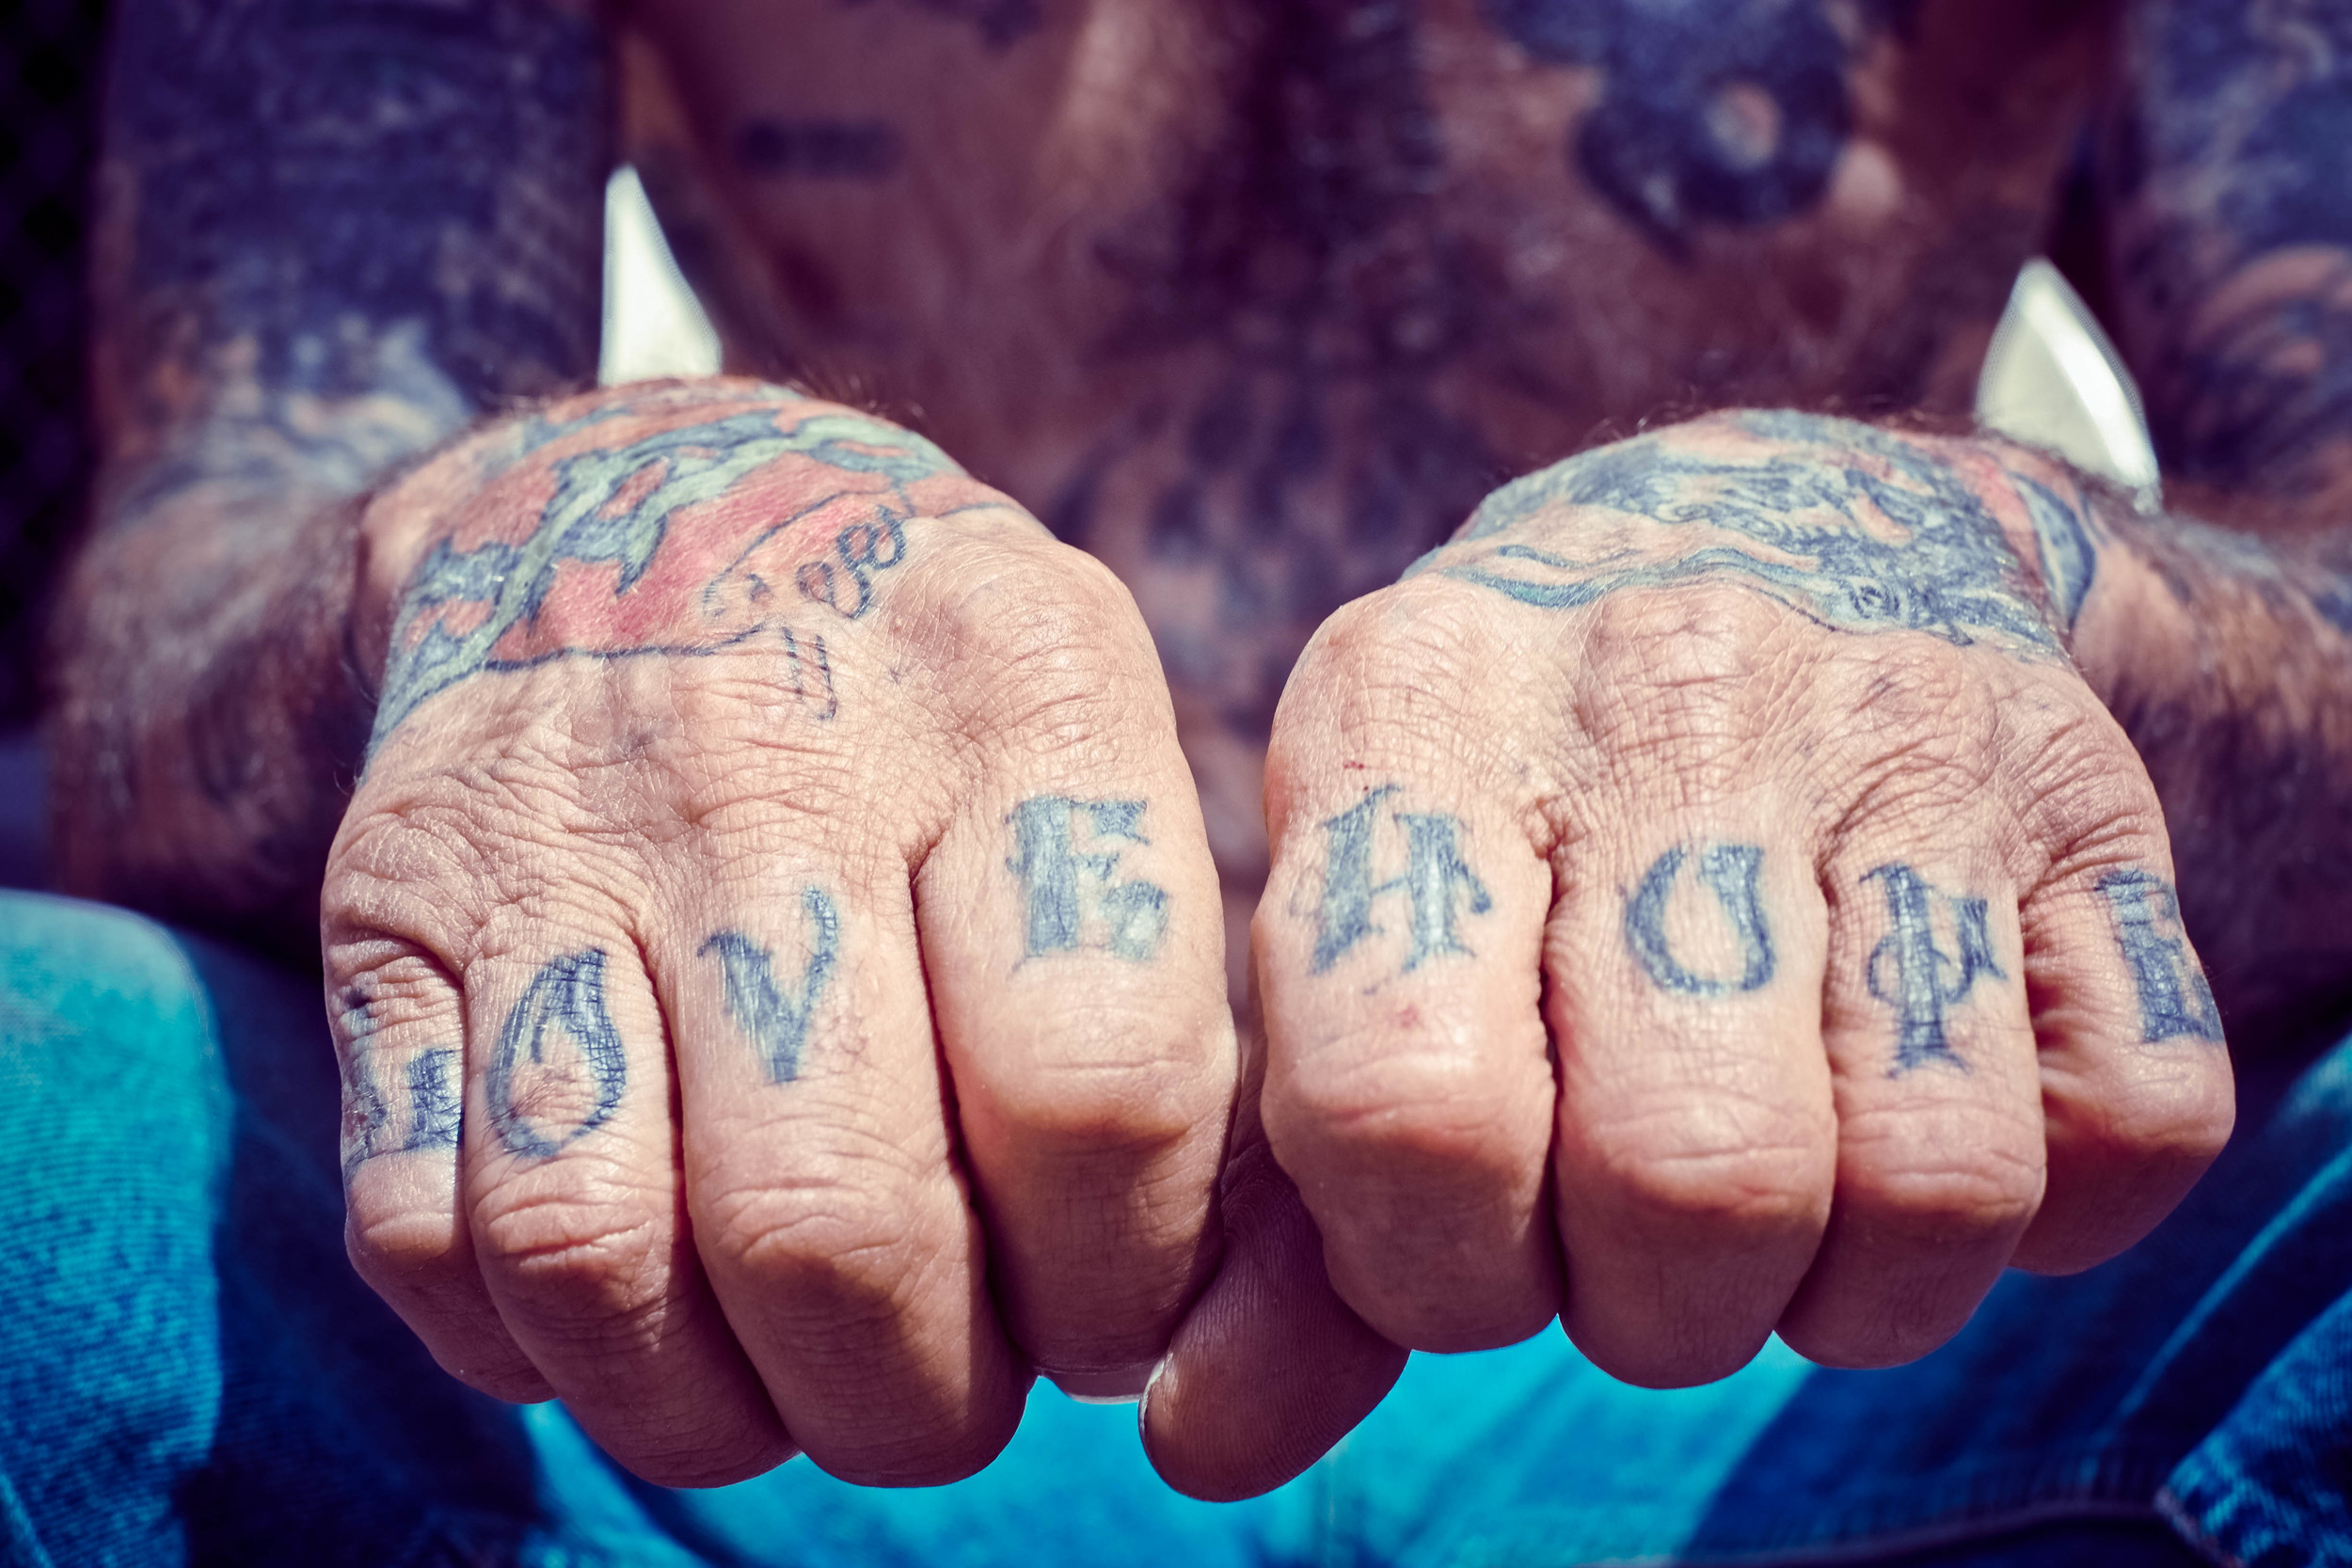 Prison Tattoos  (The 4th Wall, stories of tattoos & body modification, by Fareed Kaviani: www.the4thwall.net)